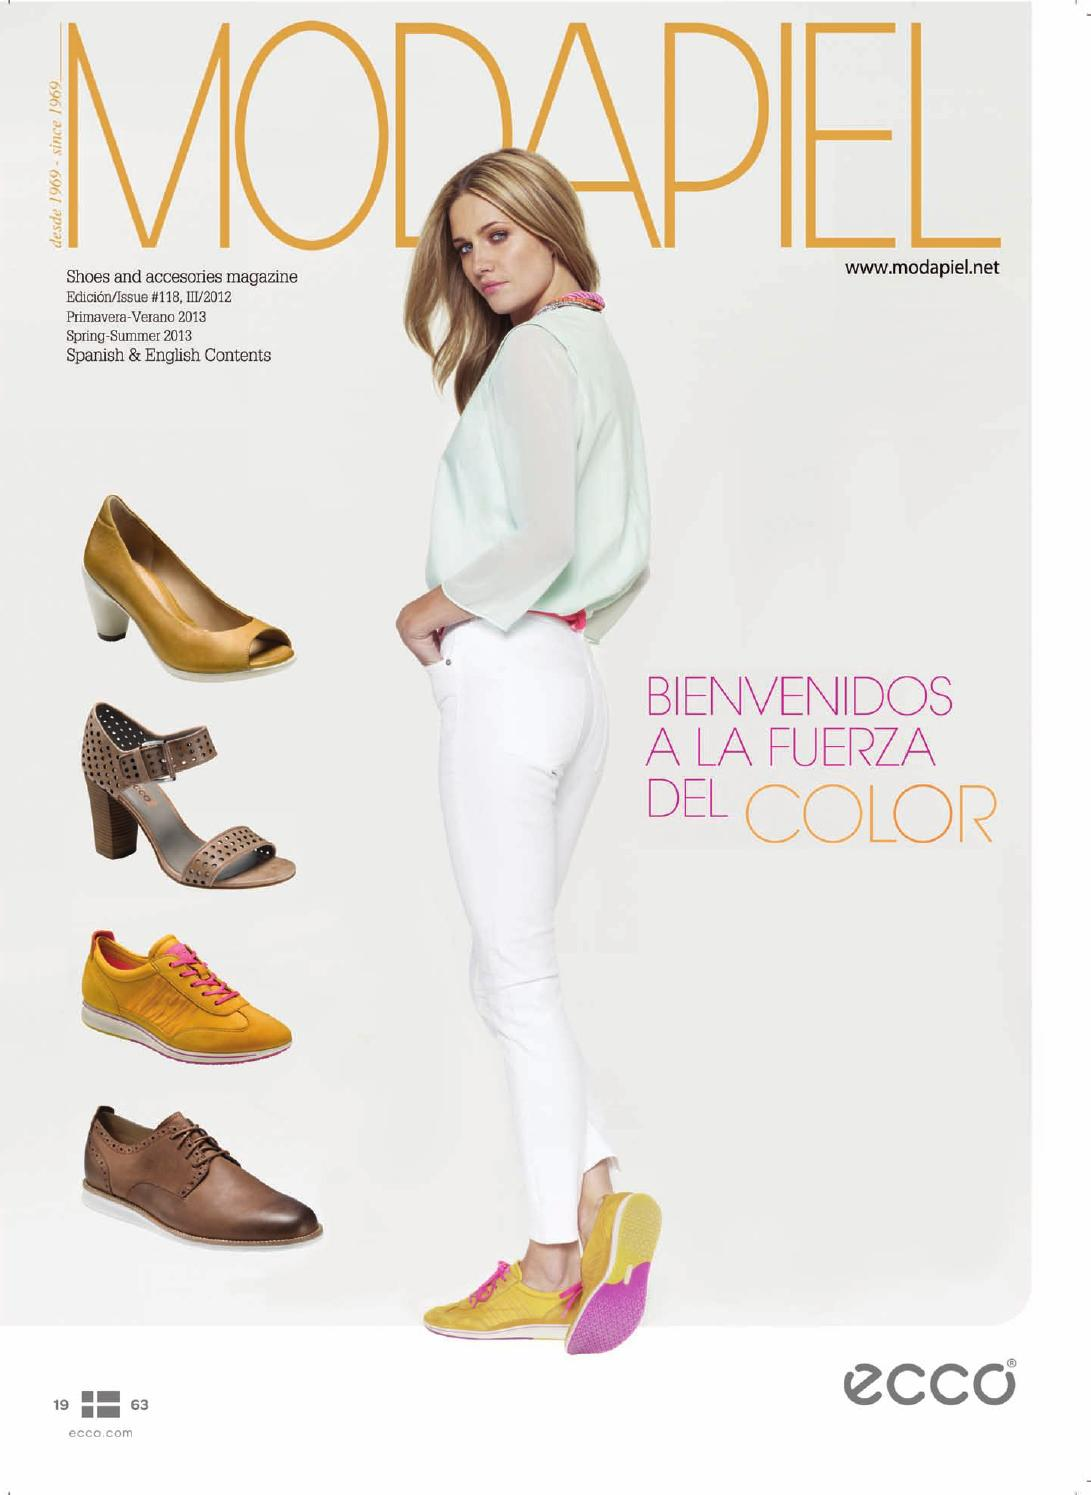 new style 4f58d e6269 Modapiel 118 Shoes and accessories magazine by Prensa Técnica S.L. - issuu